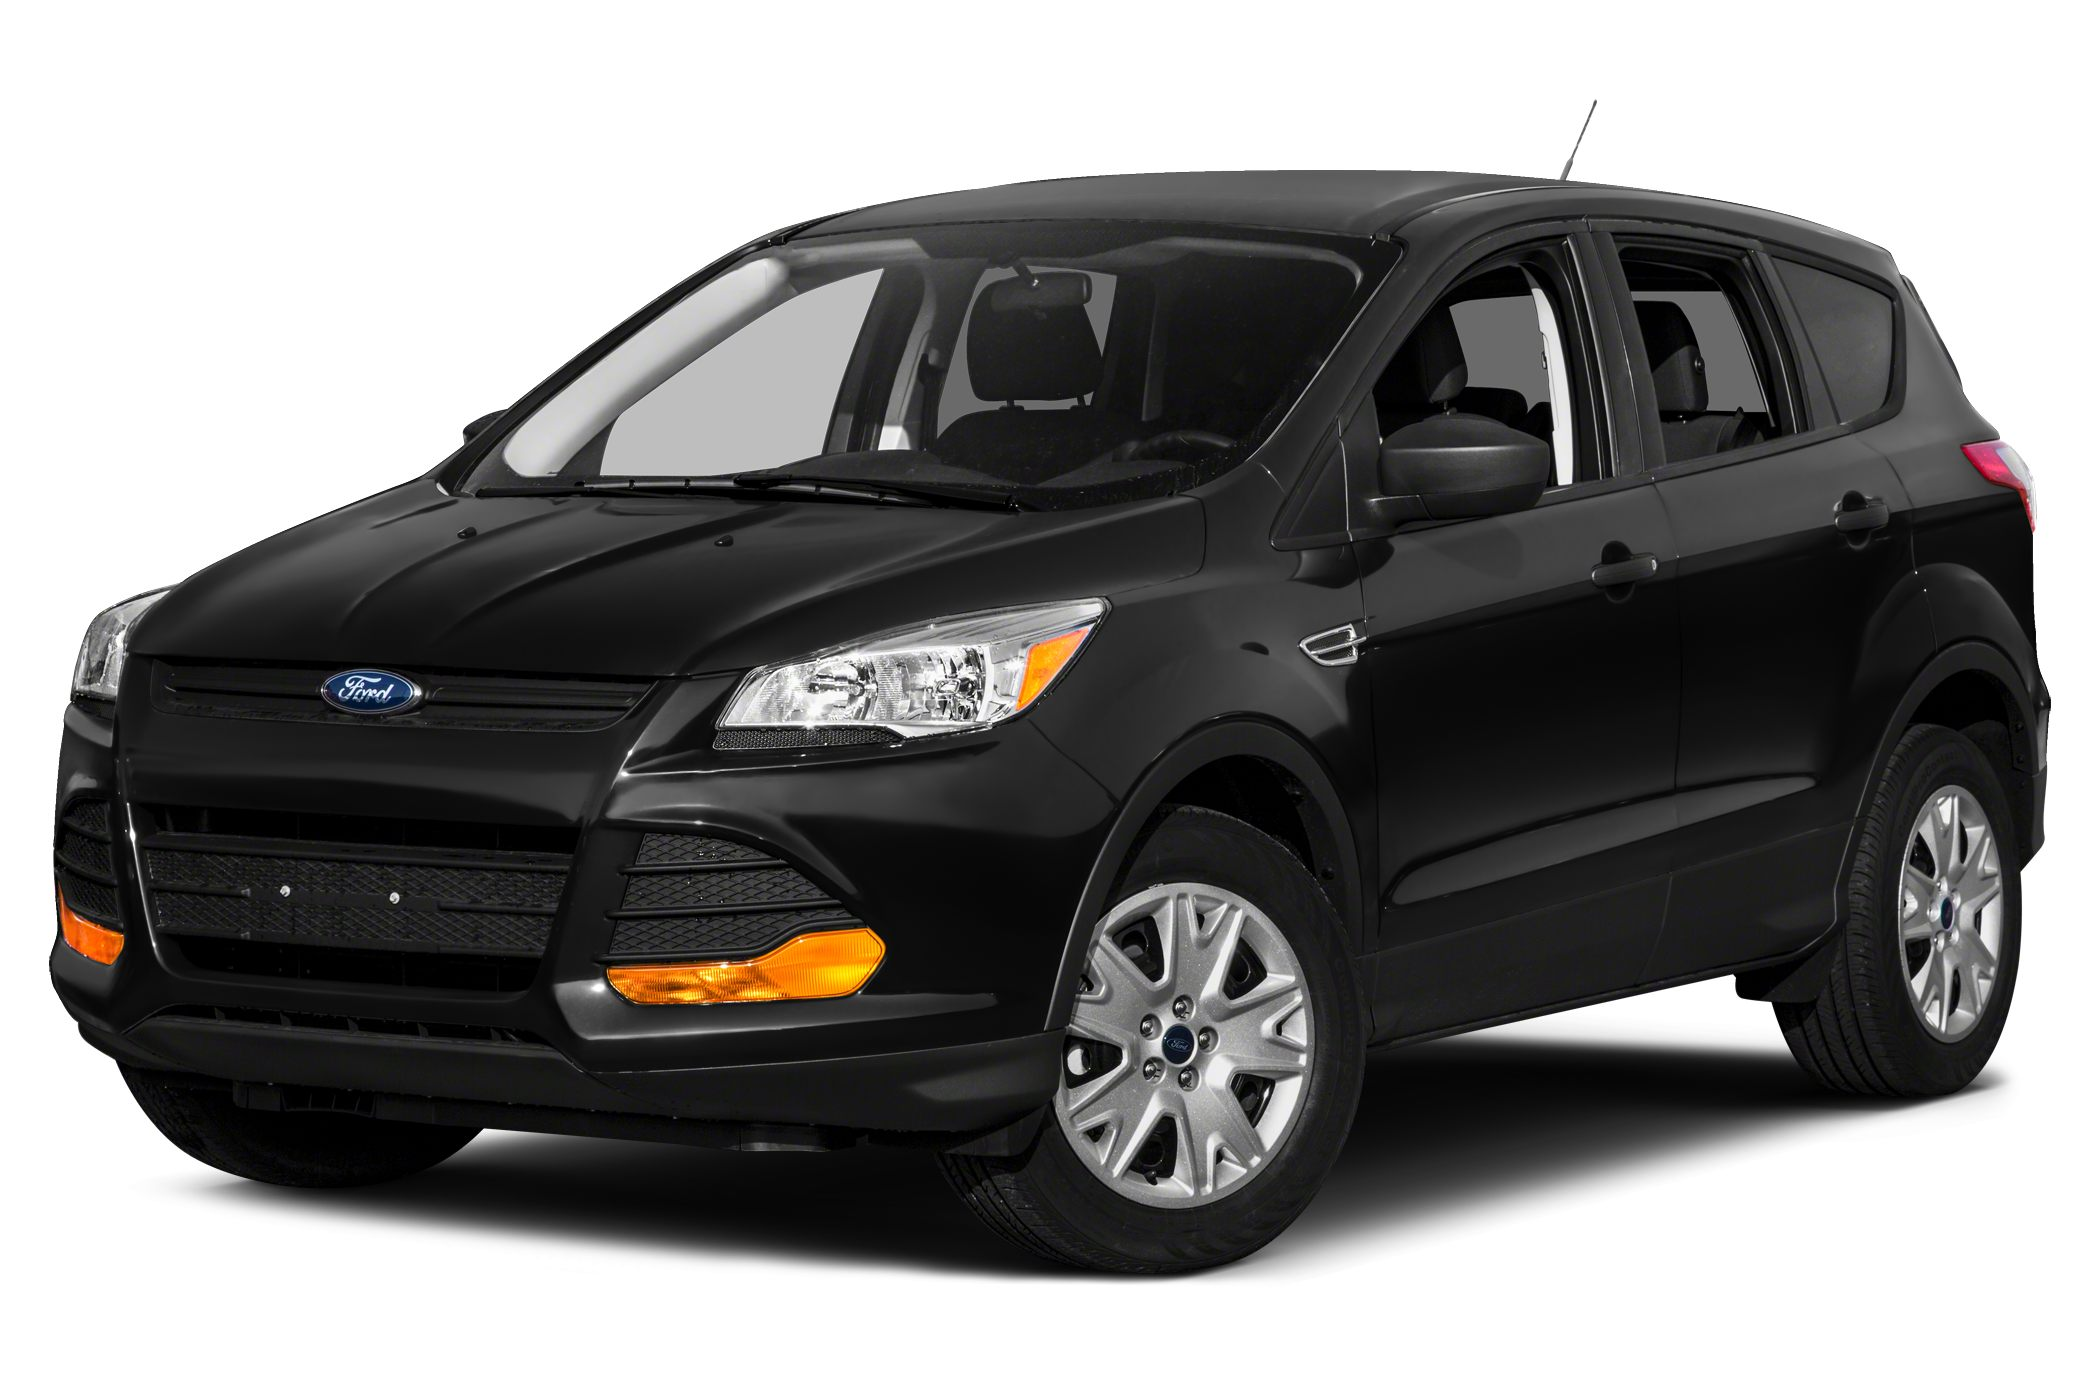 2013 Ford Escape SE ONLY 30962 Miles PRICED TO MOVE 2800 below Kelley Blue Book EPA 28 MPG H